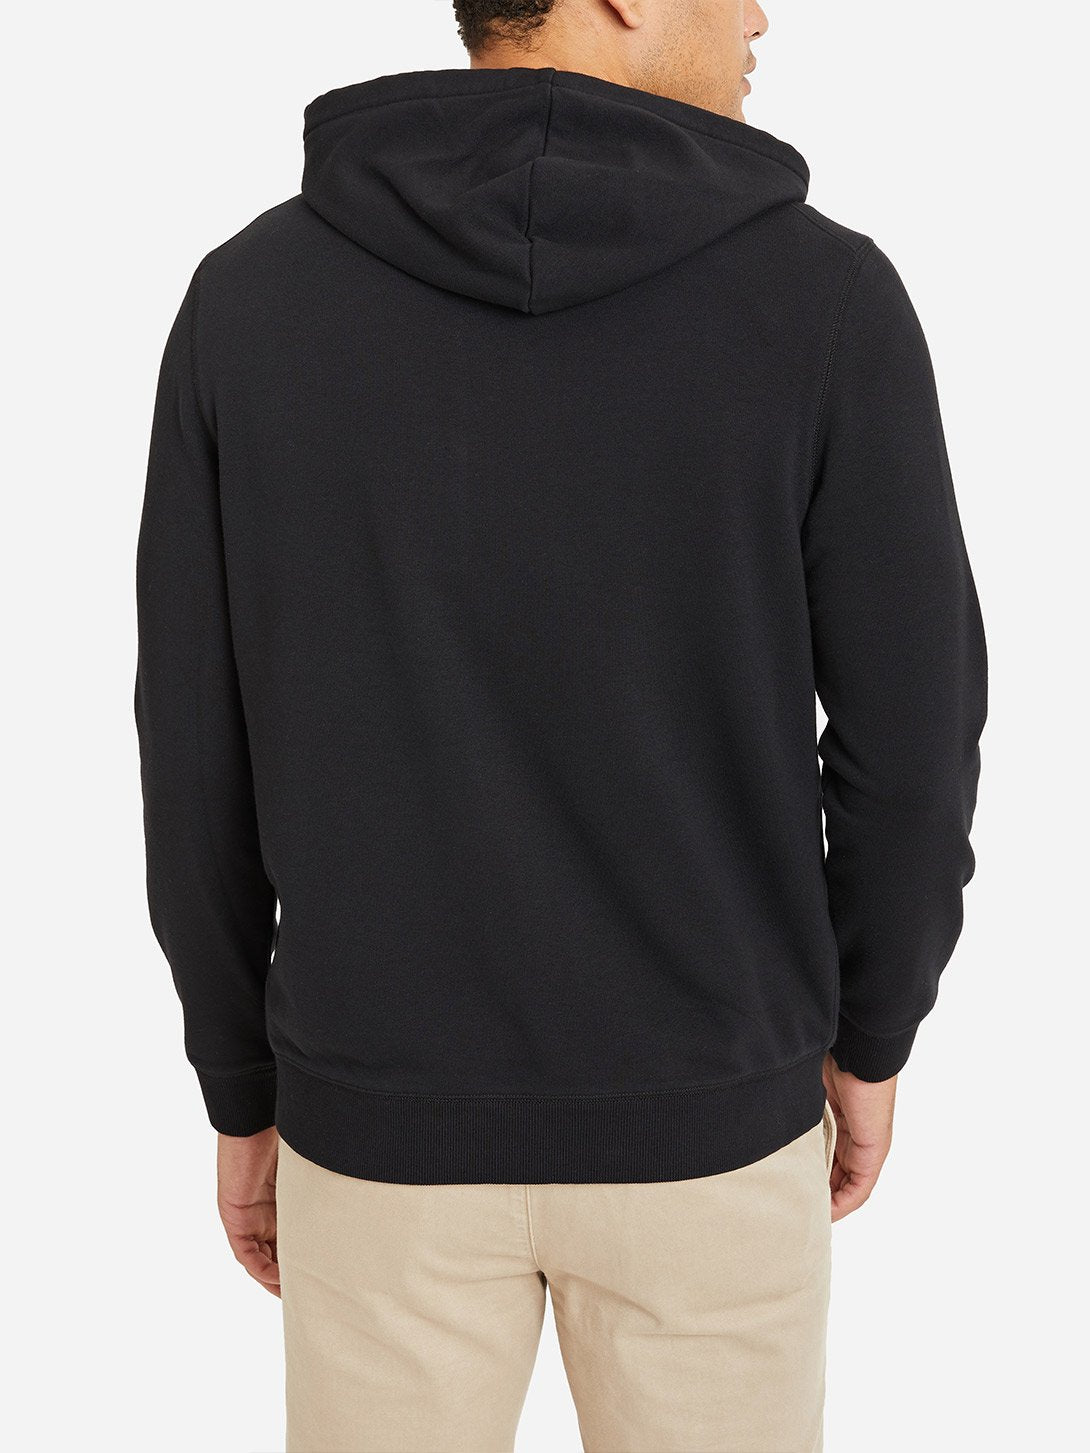 JET BLACK zip up hoodie for men by ons clothing